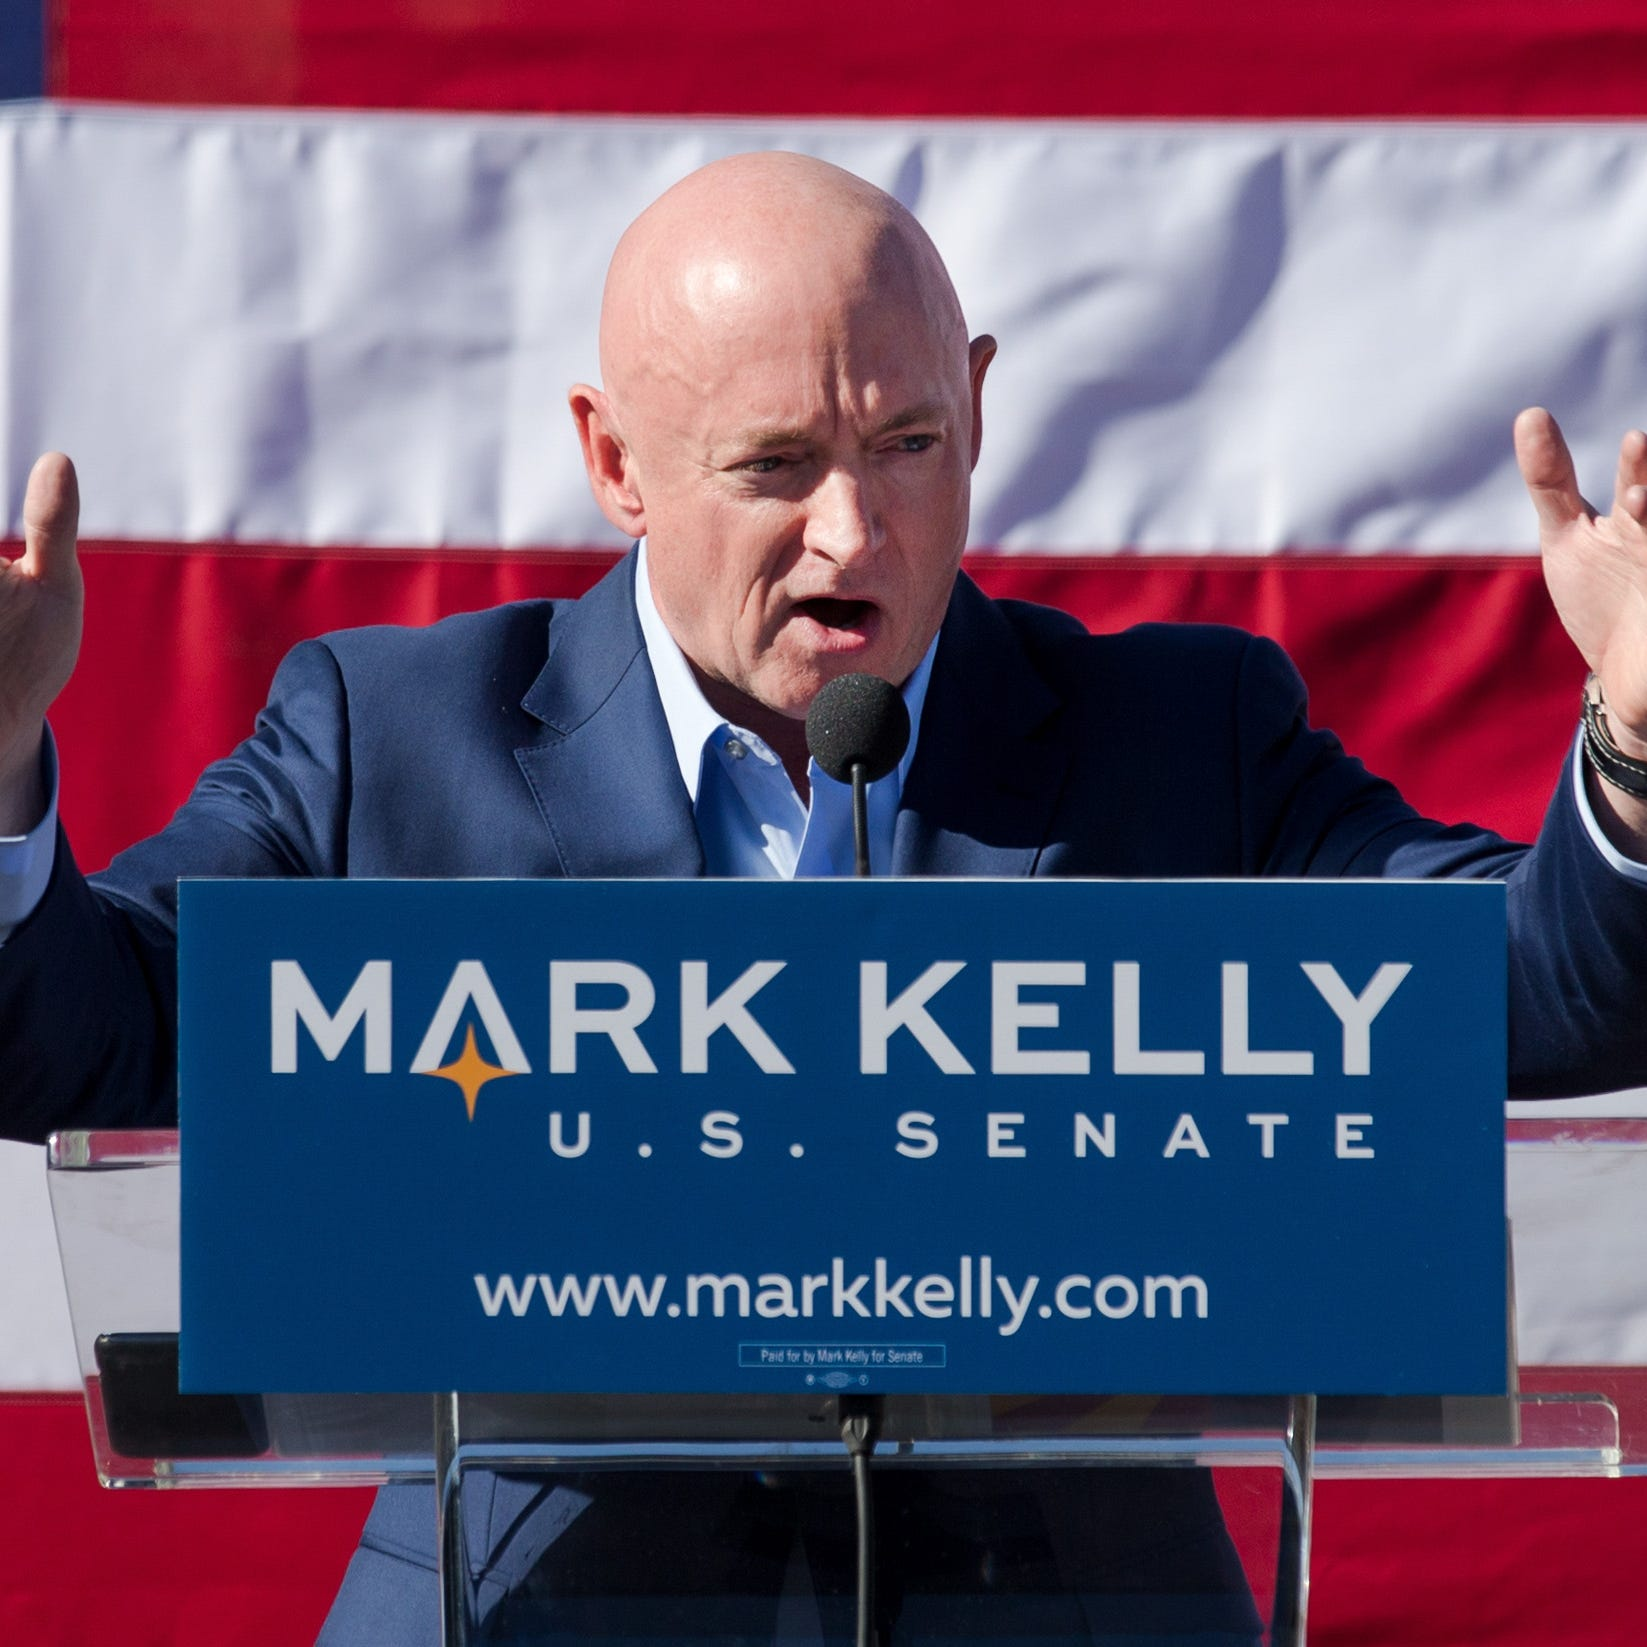 Mark Kelly shuns corporate PACs. But his ties with corporate money are more complicated